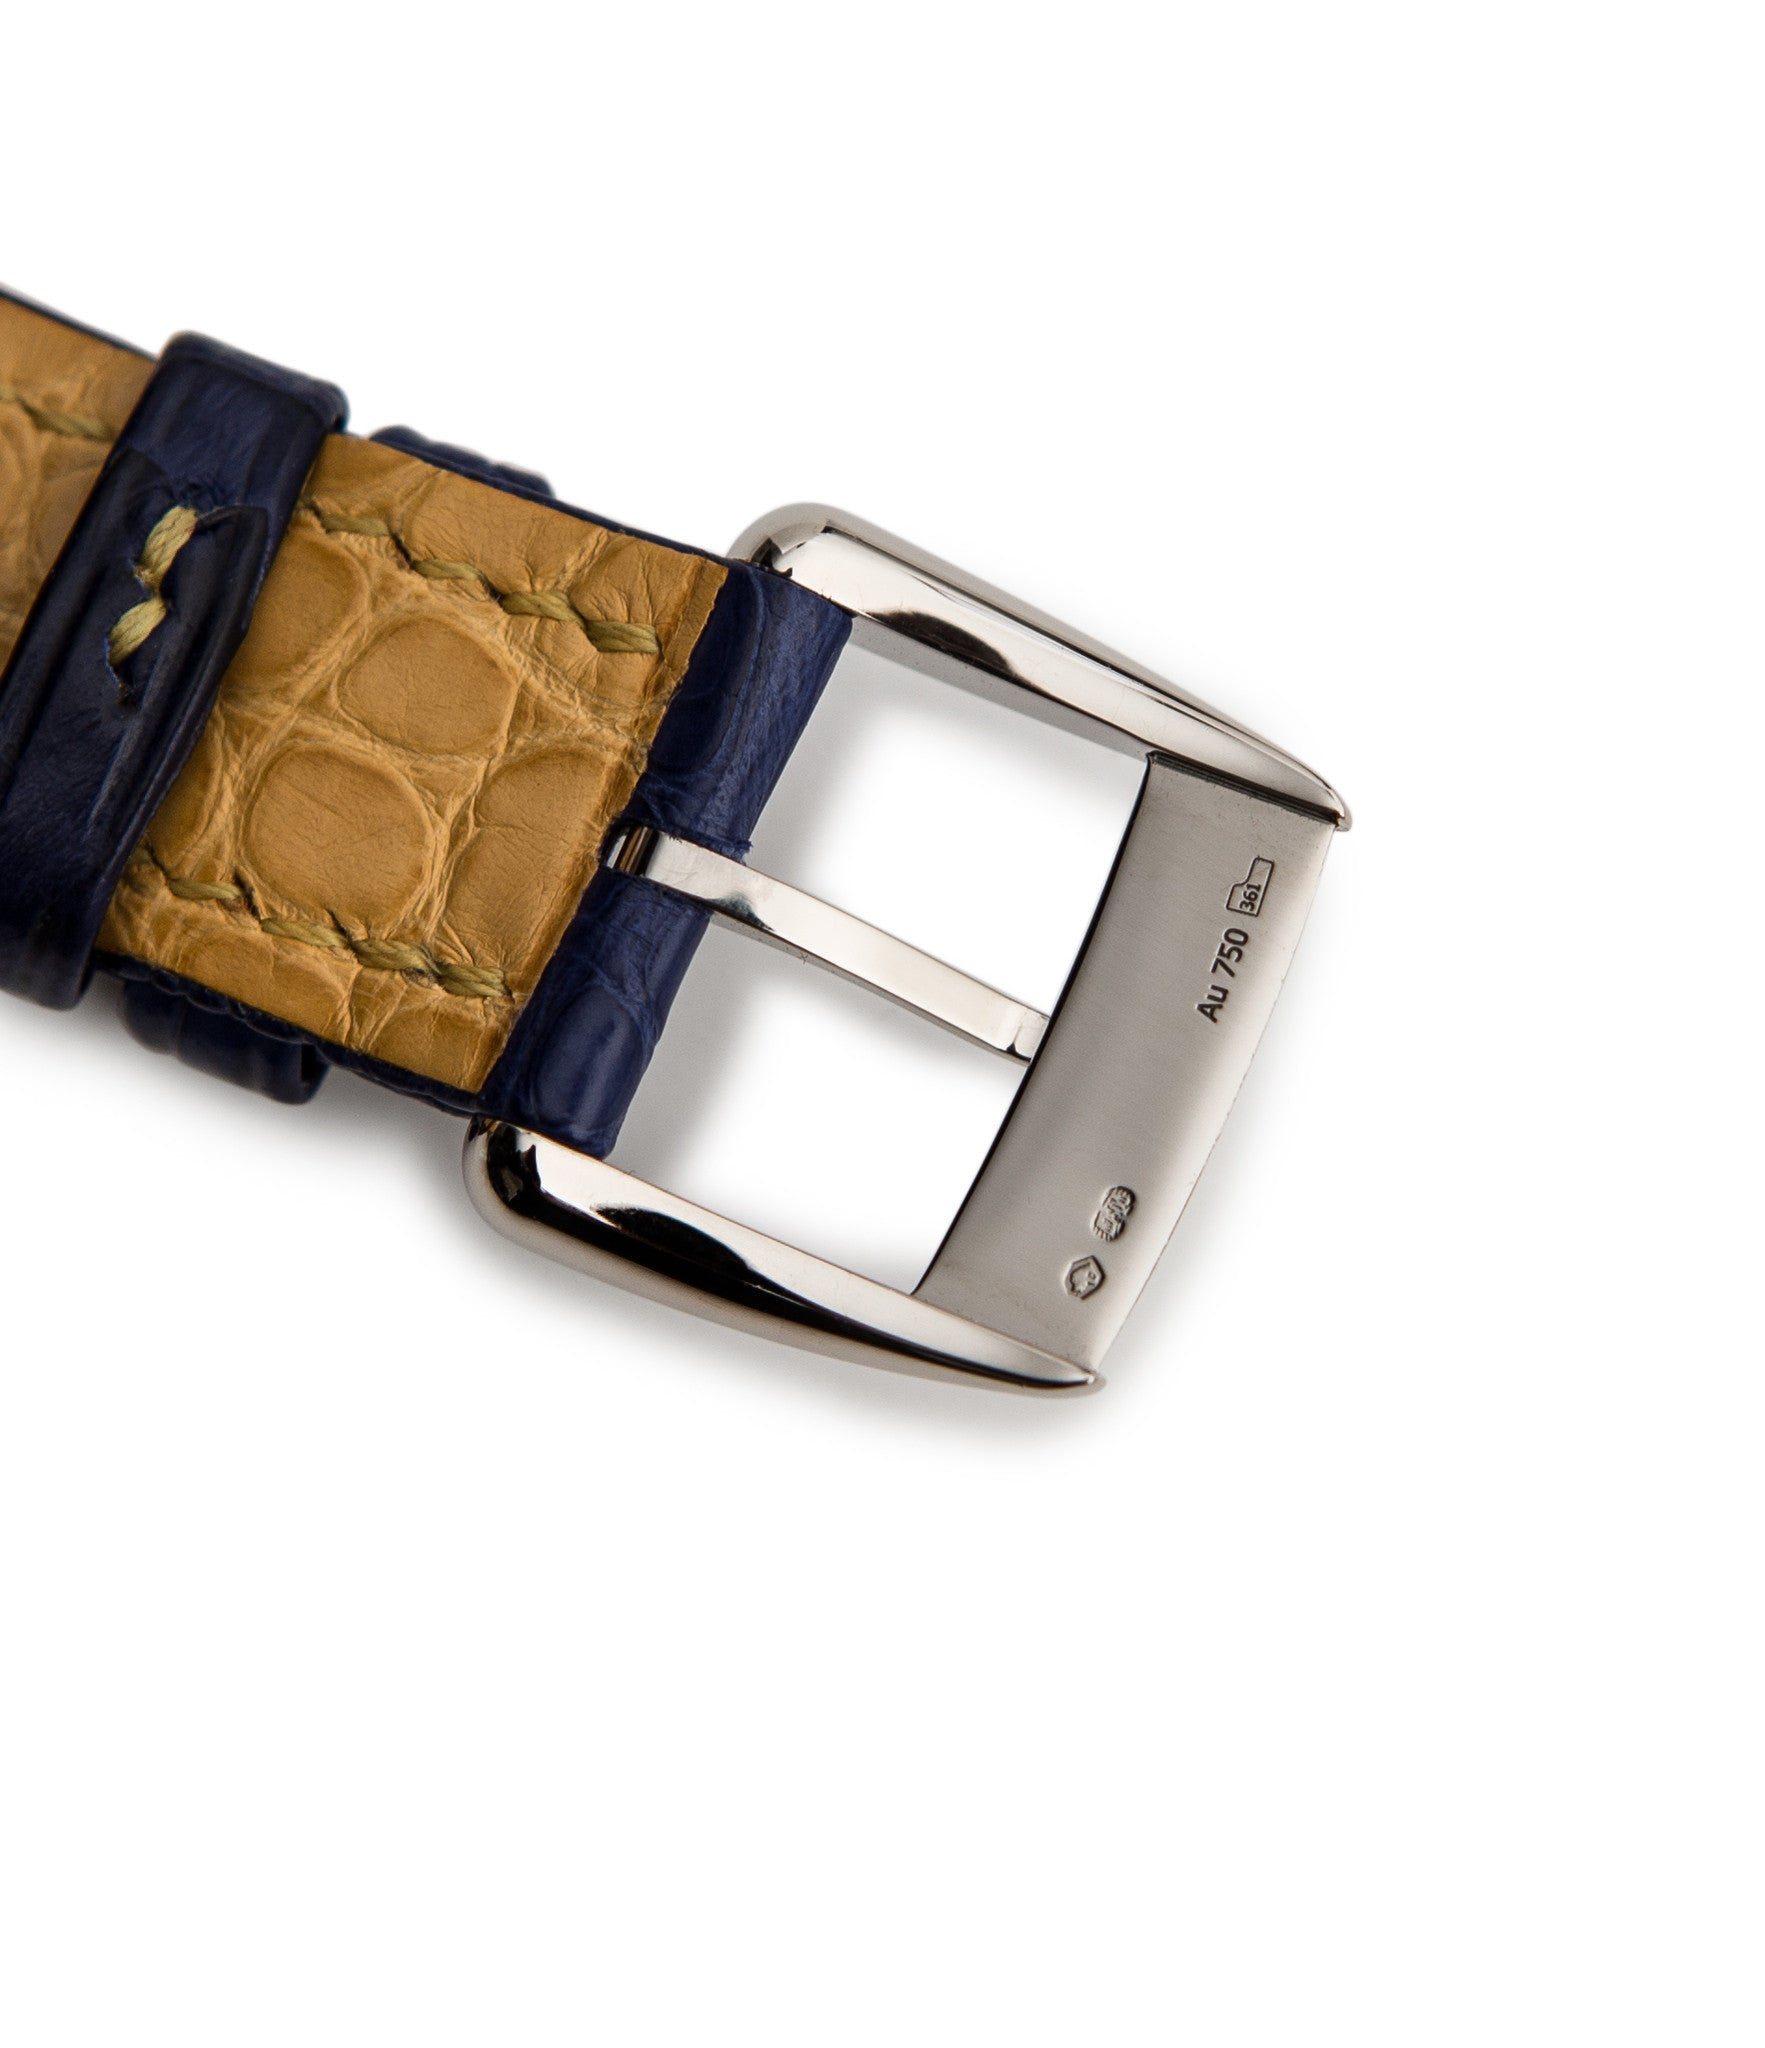 buy Kari Voutilainen unique piece watch Kaen with authetic white gold tang buckle on blue alligator strap with yellow stitchings